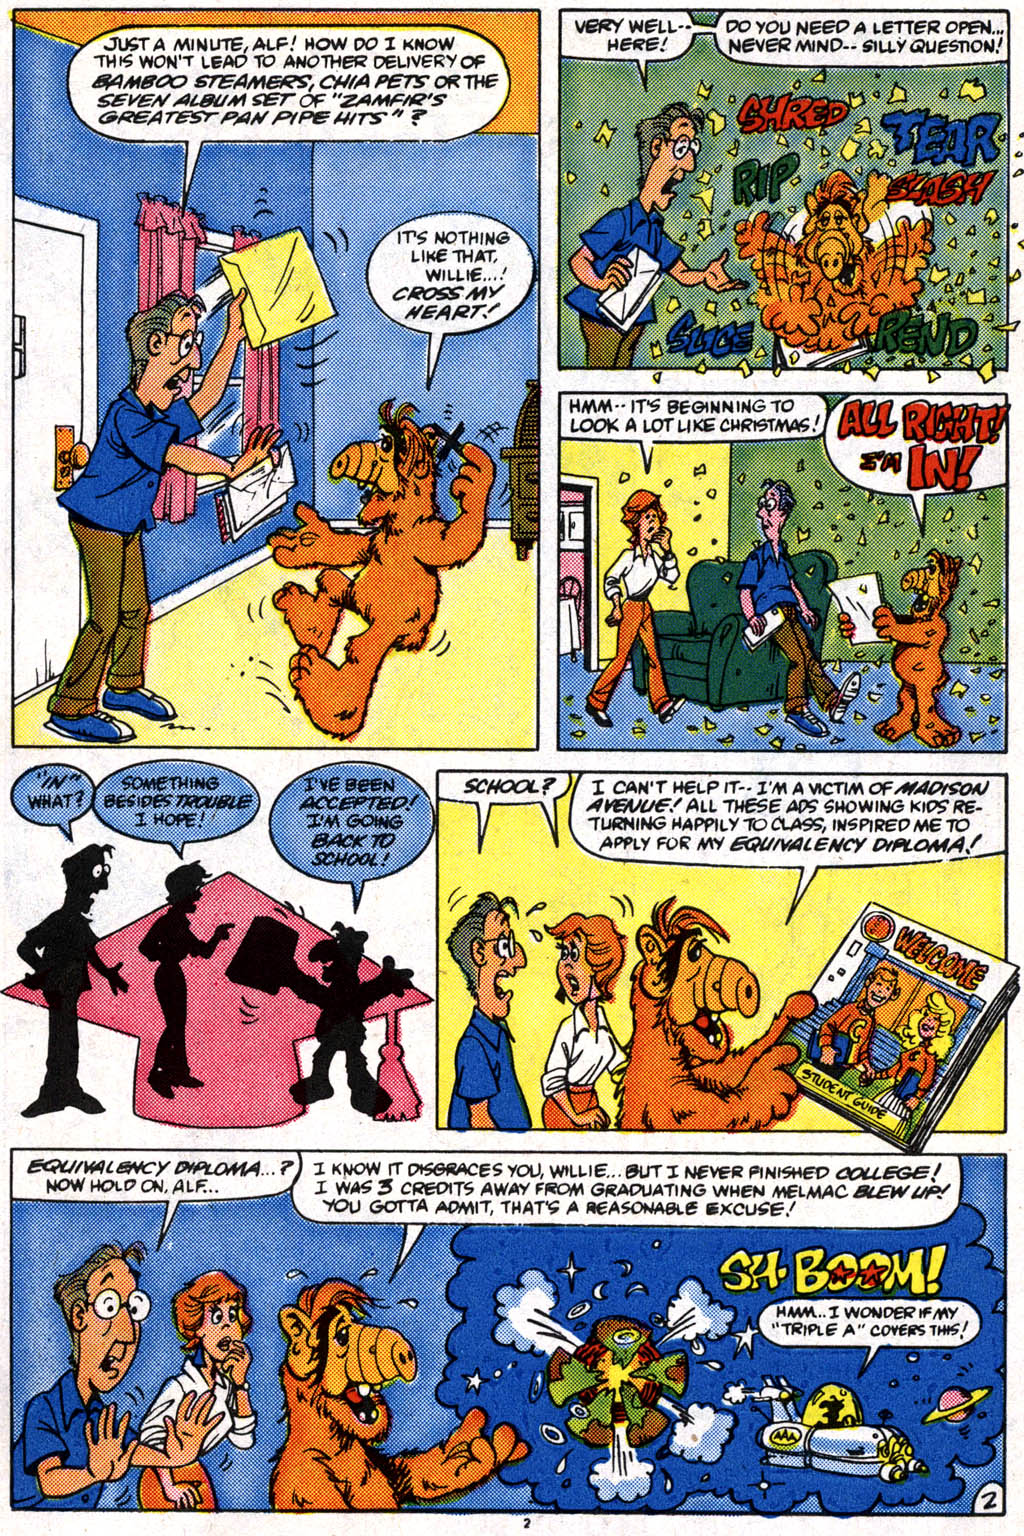 Read online ALF comic -  Issue #10 - 3